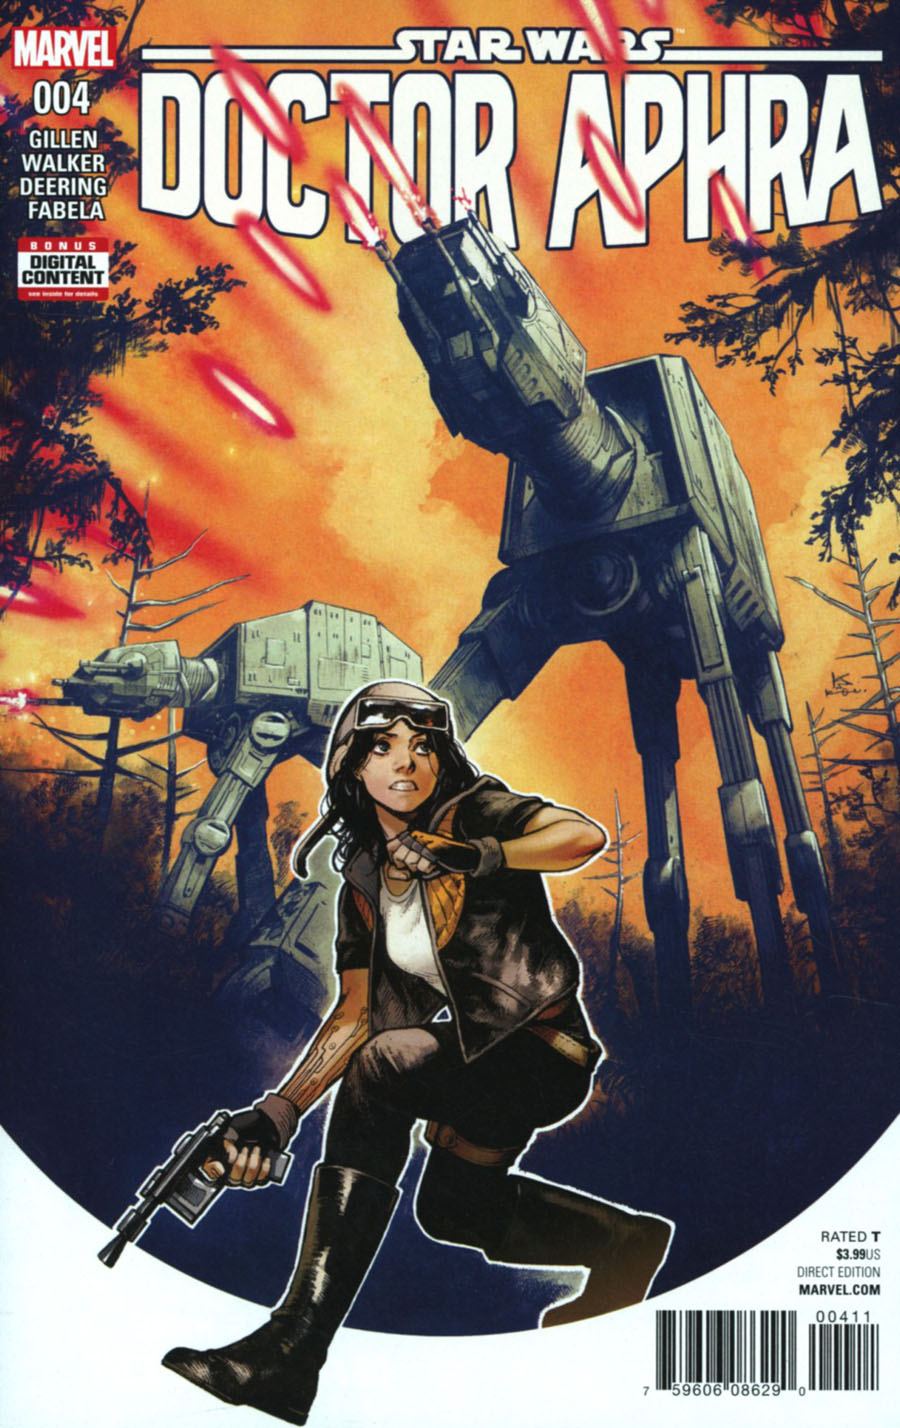 Star Wars - Docteur Aphra 4 - Book I, Part IV